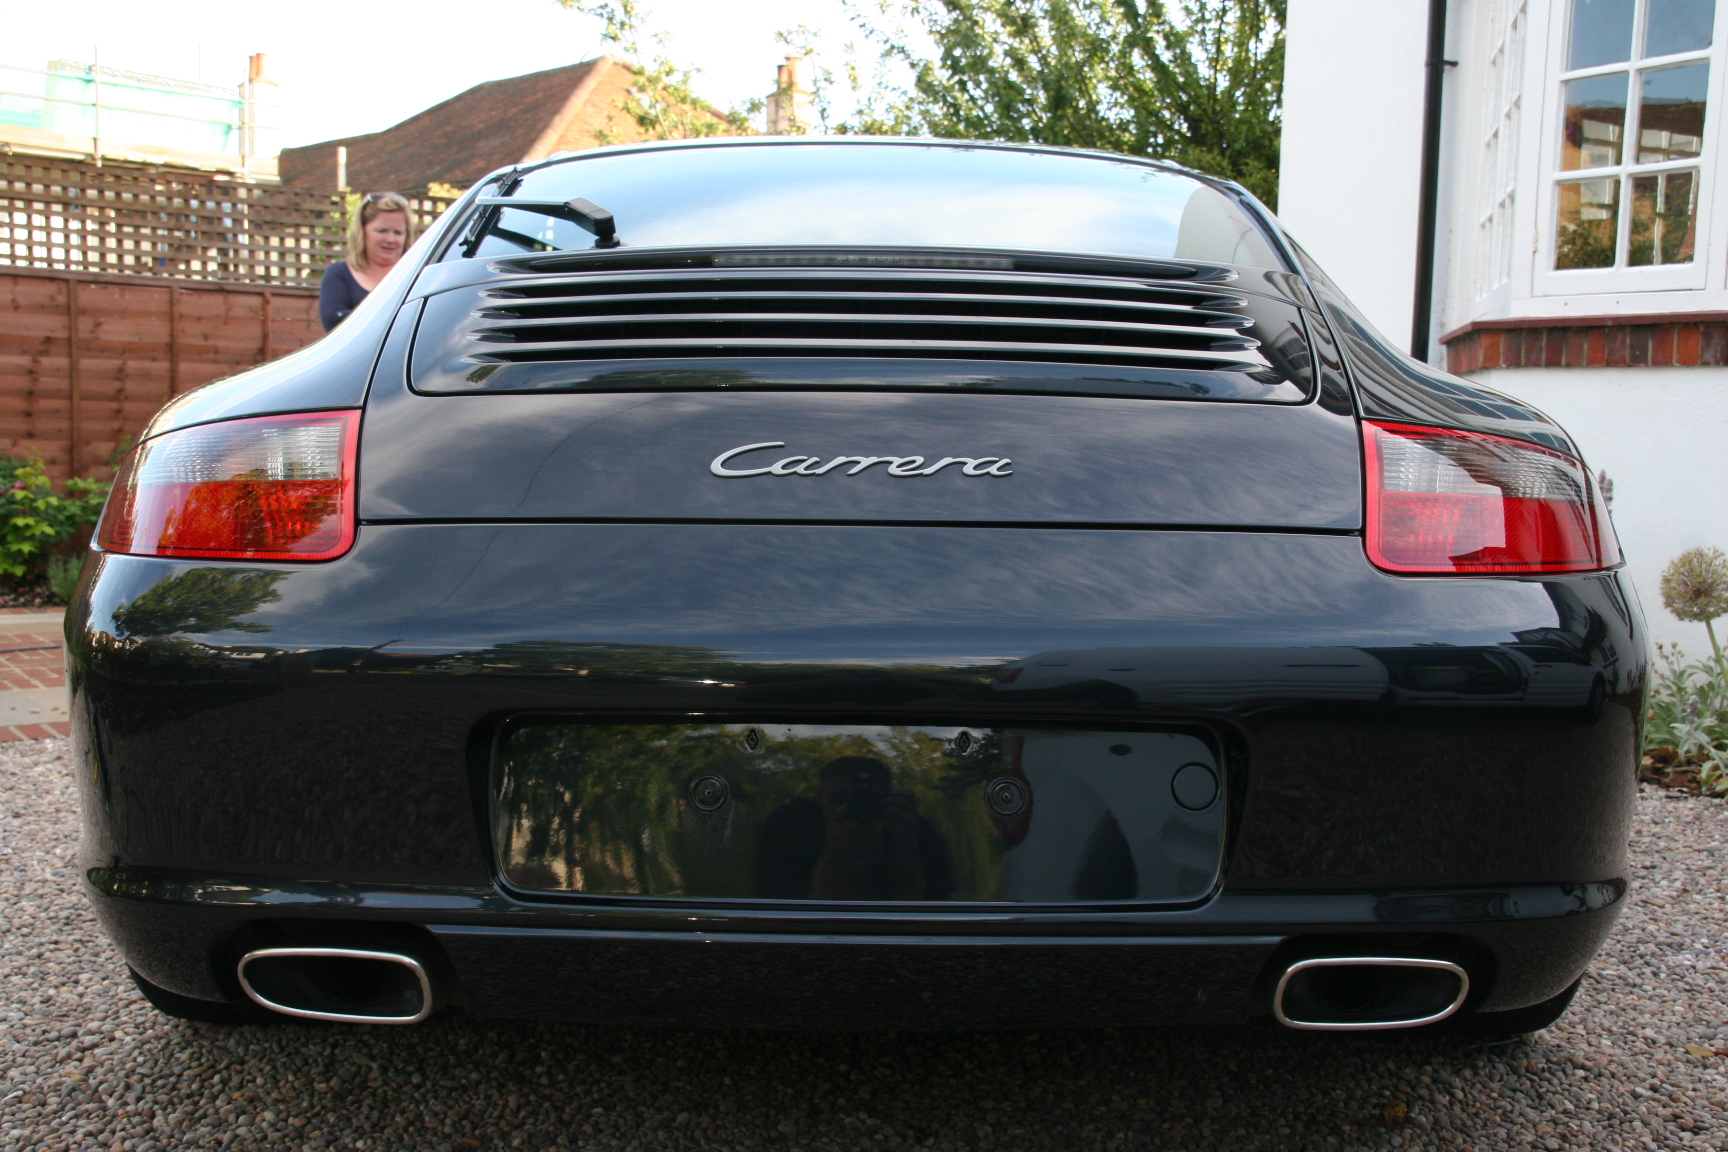 porsche-carrera-car-detailing-surrey-all-that-gleams-108